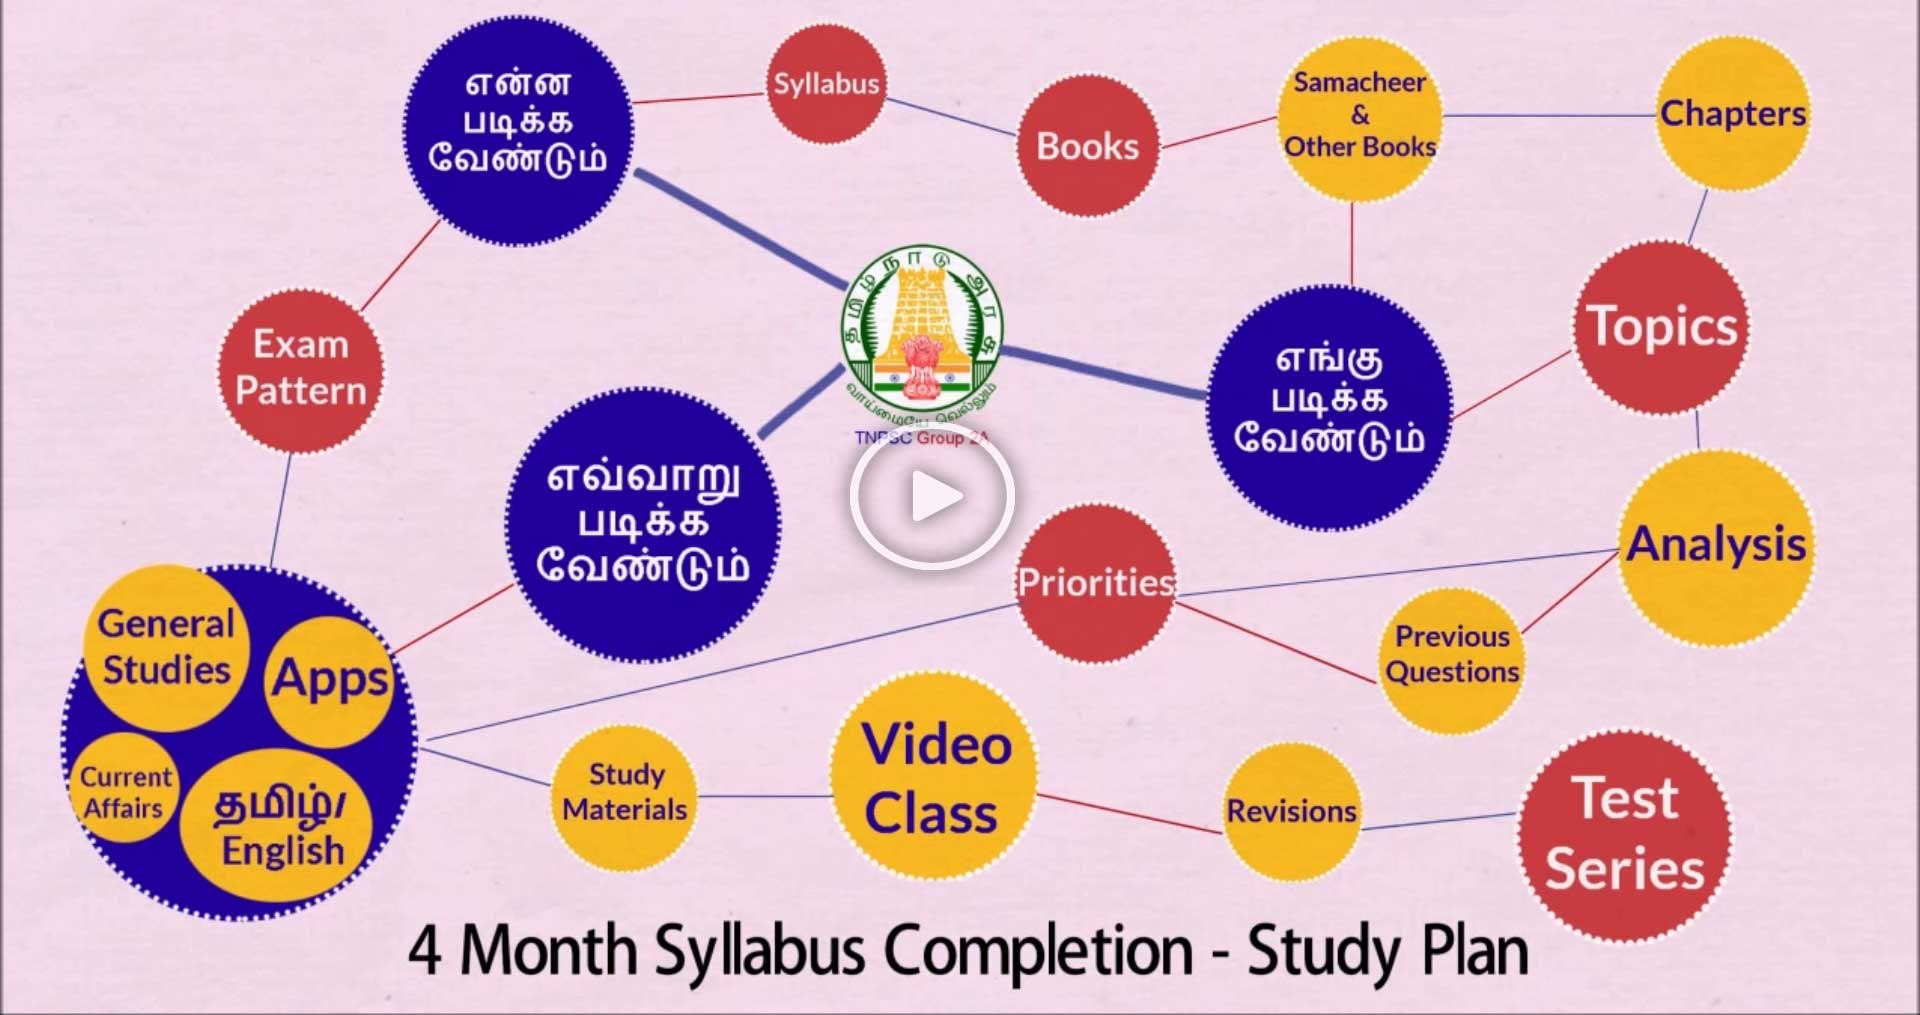 Tnpsc group 2a preparation strategy and study plan by tnpsc tnpsc group 2a preparation strategy and study plan by tnpscademy gamestrikefo Gallery